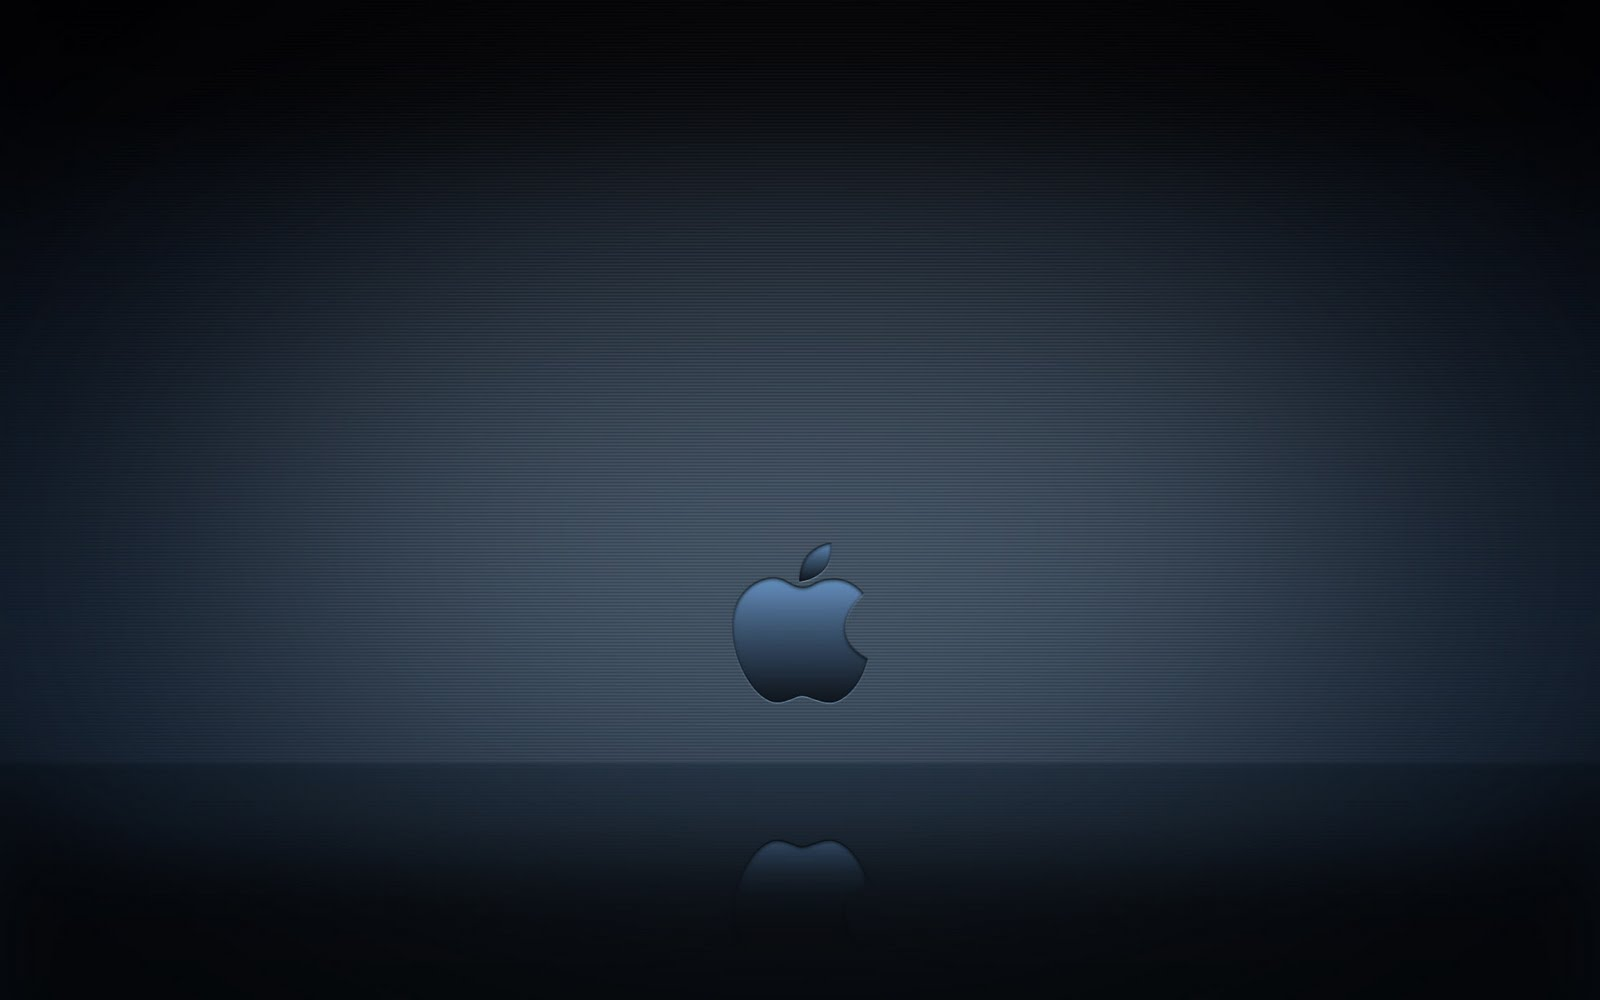 Apple HD Wallpapers Apple Logo Desktop Backgrounds  - apple in black background wallpapers